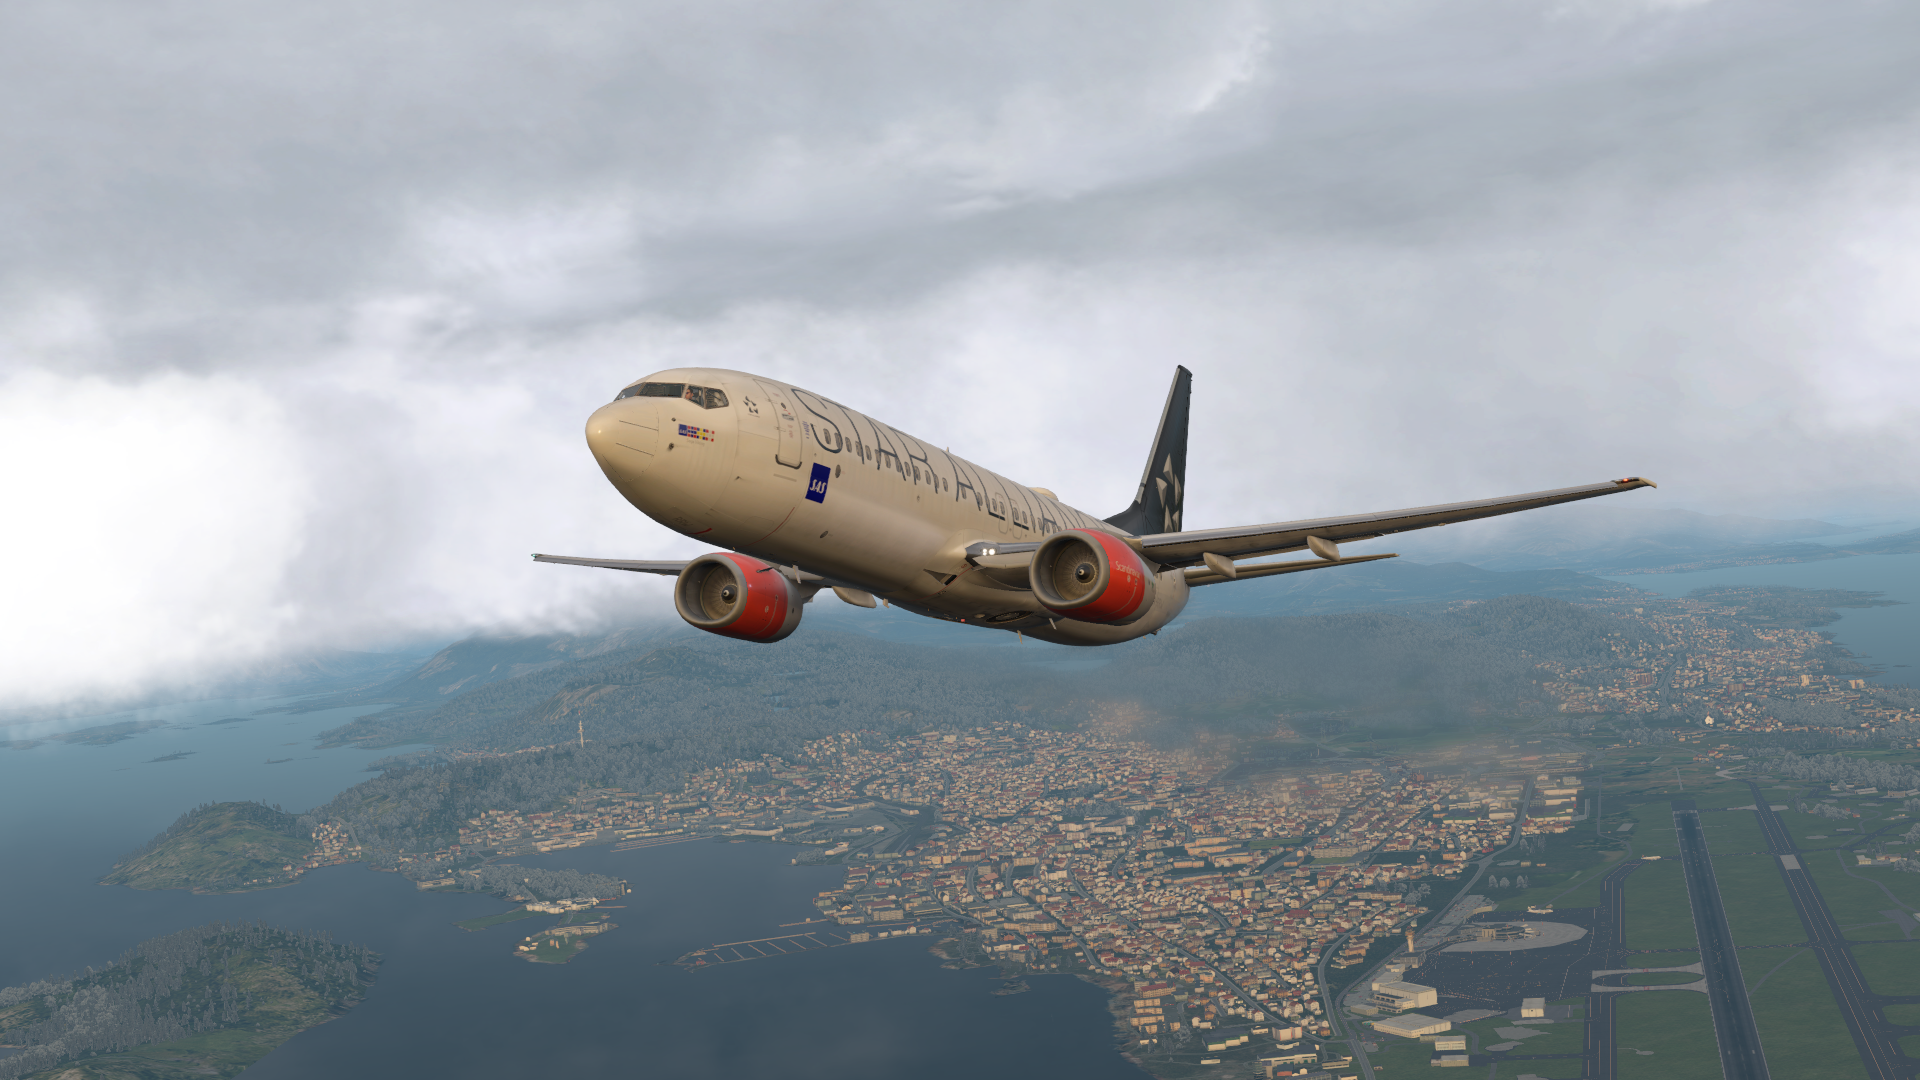 b738-2020-03-1321.25.9bjfw.png